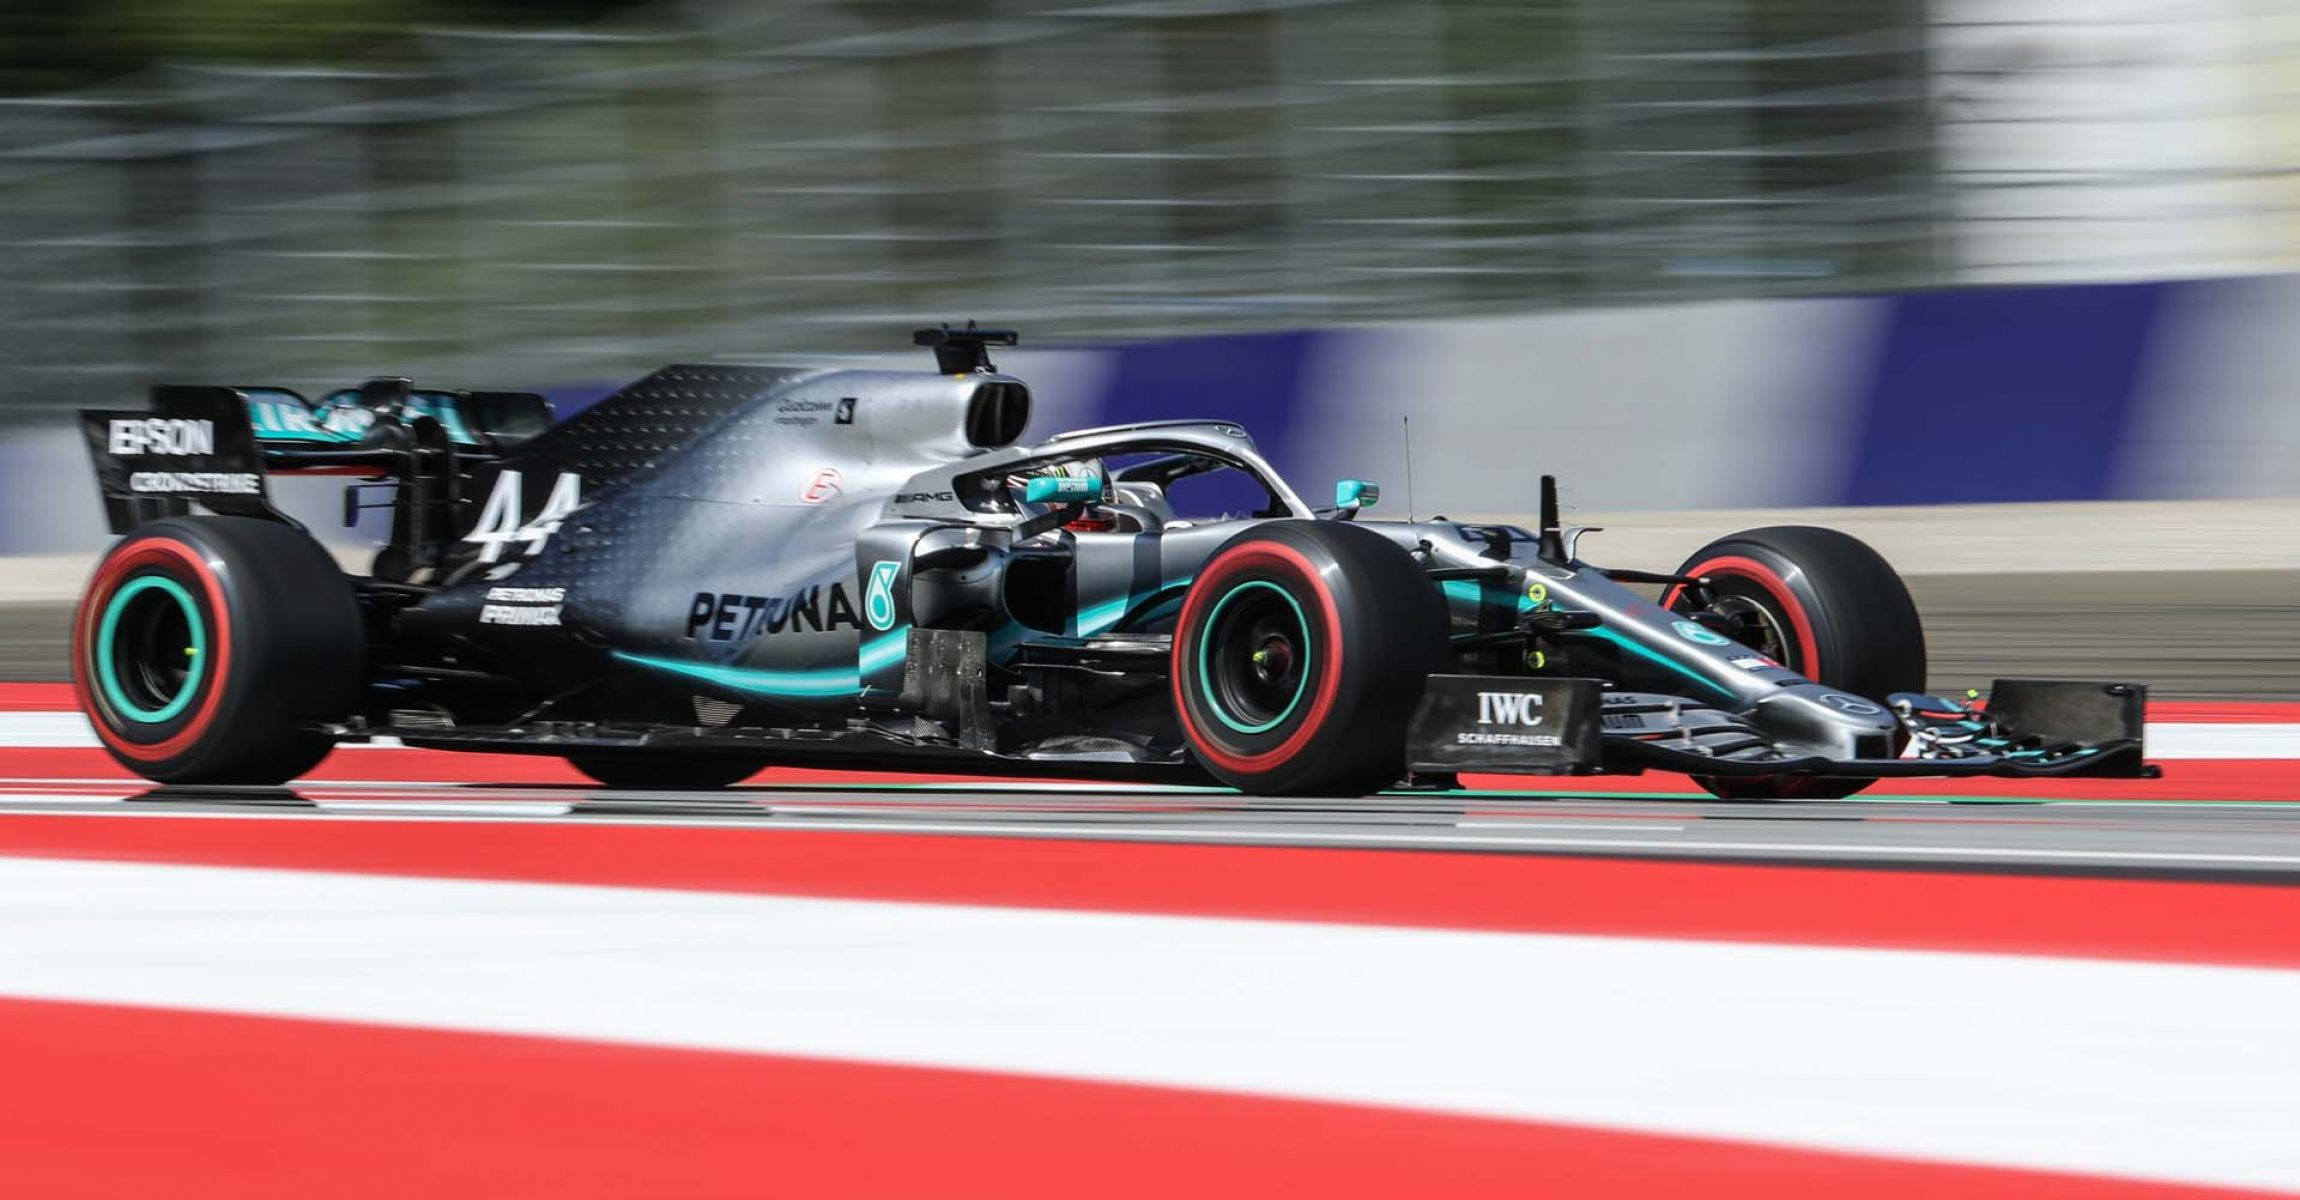 SPIELBERG,AUSTRIA,28.JUN.19 - MOTORSPORTS, FORMULA 1 - Grand Prix of Austria, Red Bull Ring, free practice. Image shows Lewis Hamilton (GBR/ Mercedes). Photo: GEPA pictures/ Harald Steiner - For editorial use only. Image is free of charge.